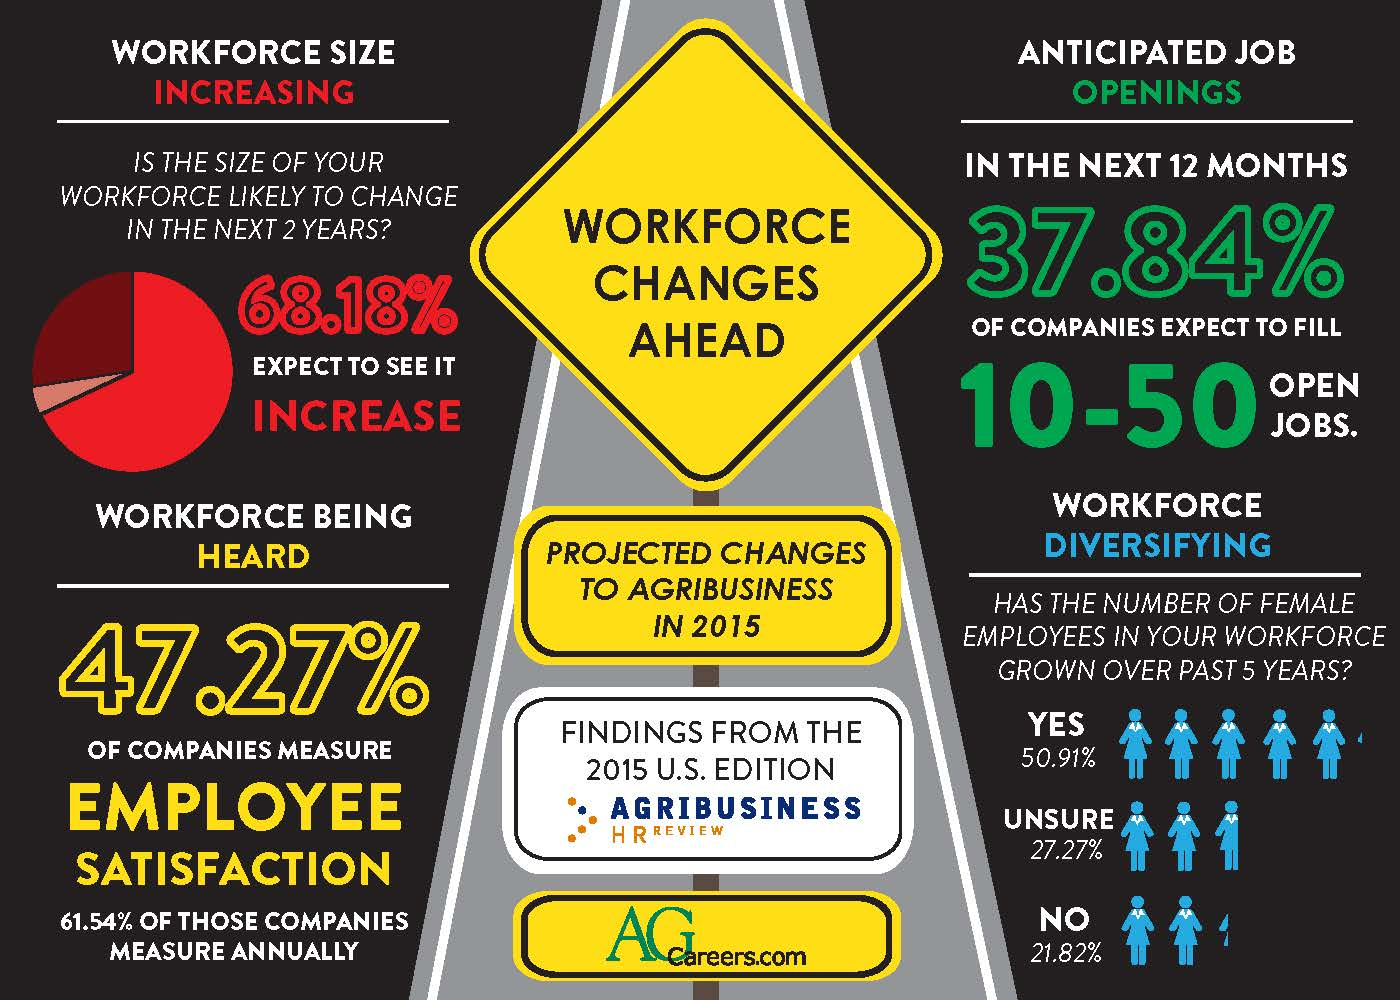 Infographic- Title:  Workforce Changes Ahead  Image Text:  Projected changes to Agribusiness in 2015.  Findings from the 2015 U.S. Edition Agribusiness HR Review.  Workforce sizing increasing:  Is the size of your workforce likely to change in the next 2 years?  68.18% expect to see it increase.  Workforce being heard:  47.27% of companies measure employee satisfaction.  61.54% of those companies measure annually.  Anticipated job openings:  In the next 12 months 37.84% of companies expect to fill 10-50 open jobs.  Workforce diversifying:  Has the number of female employees in your workforce grown over past 5 years?  Yes 50.91%; Unsure 27.27%; No 21.82%.